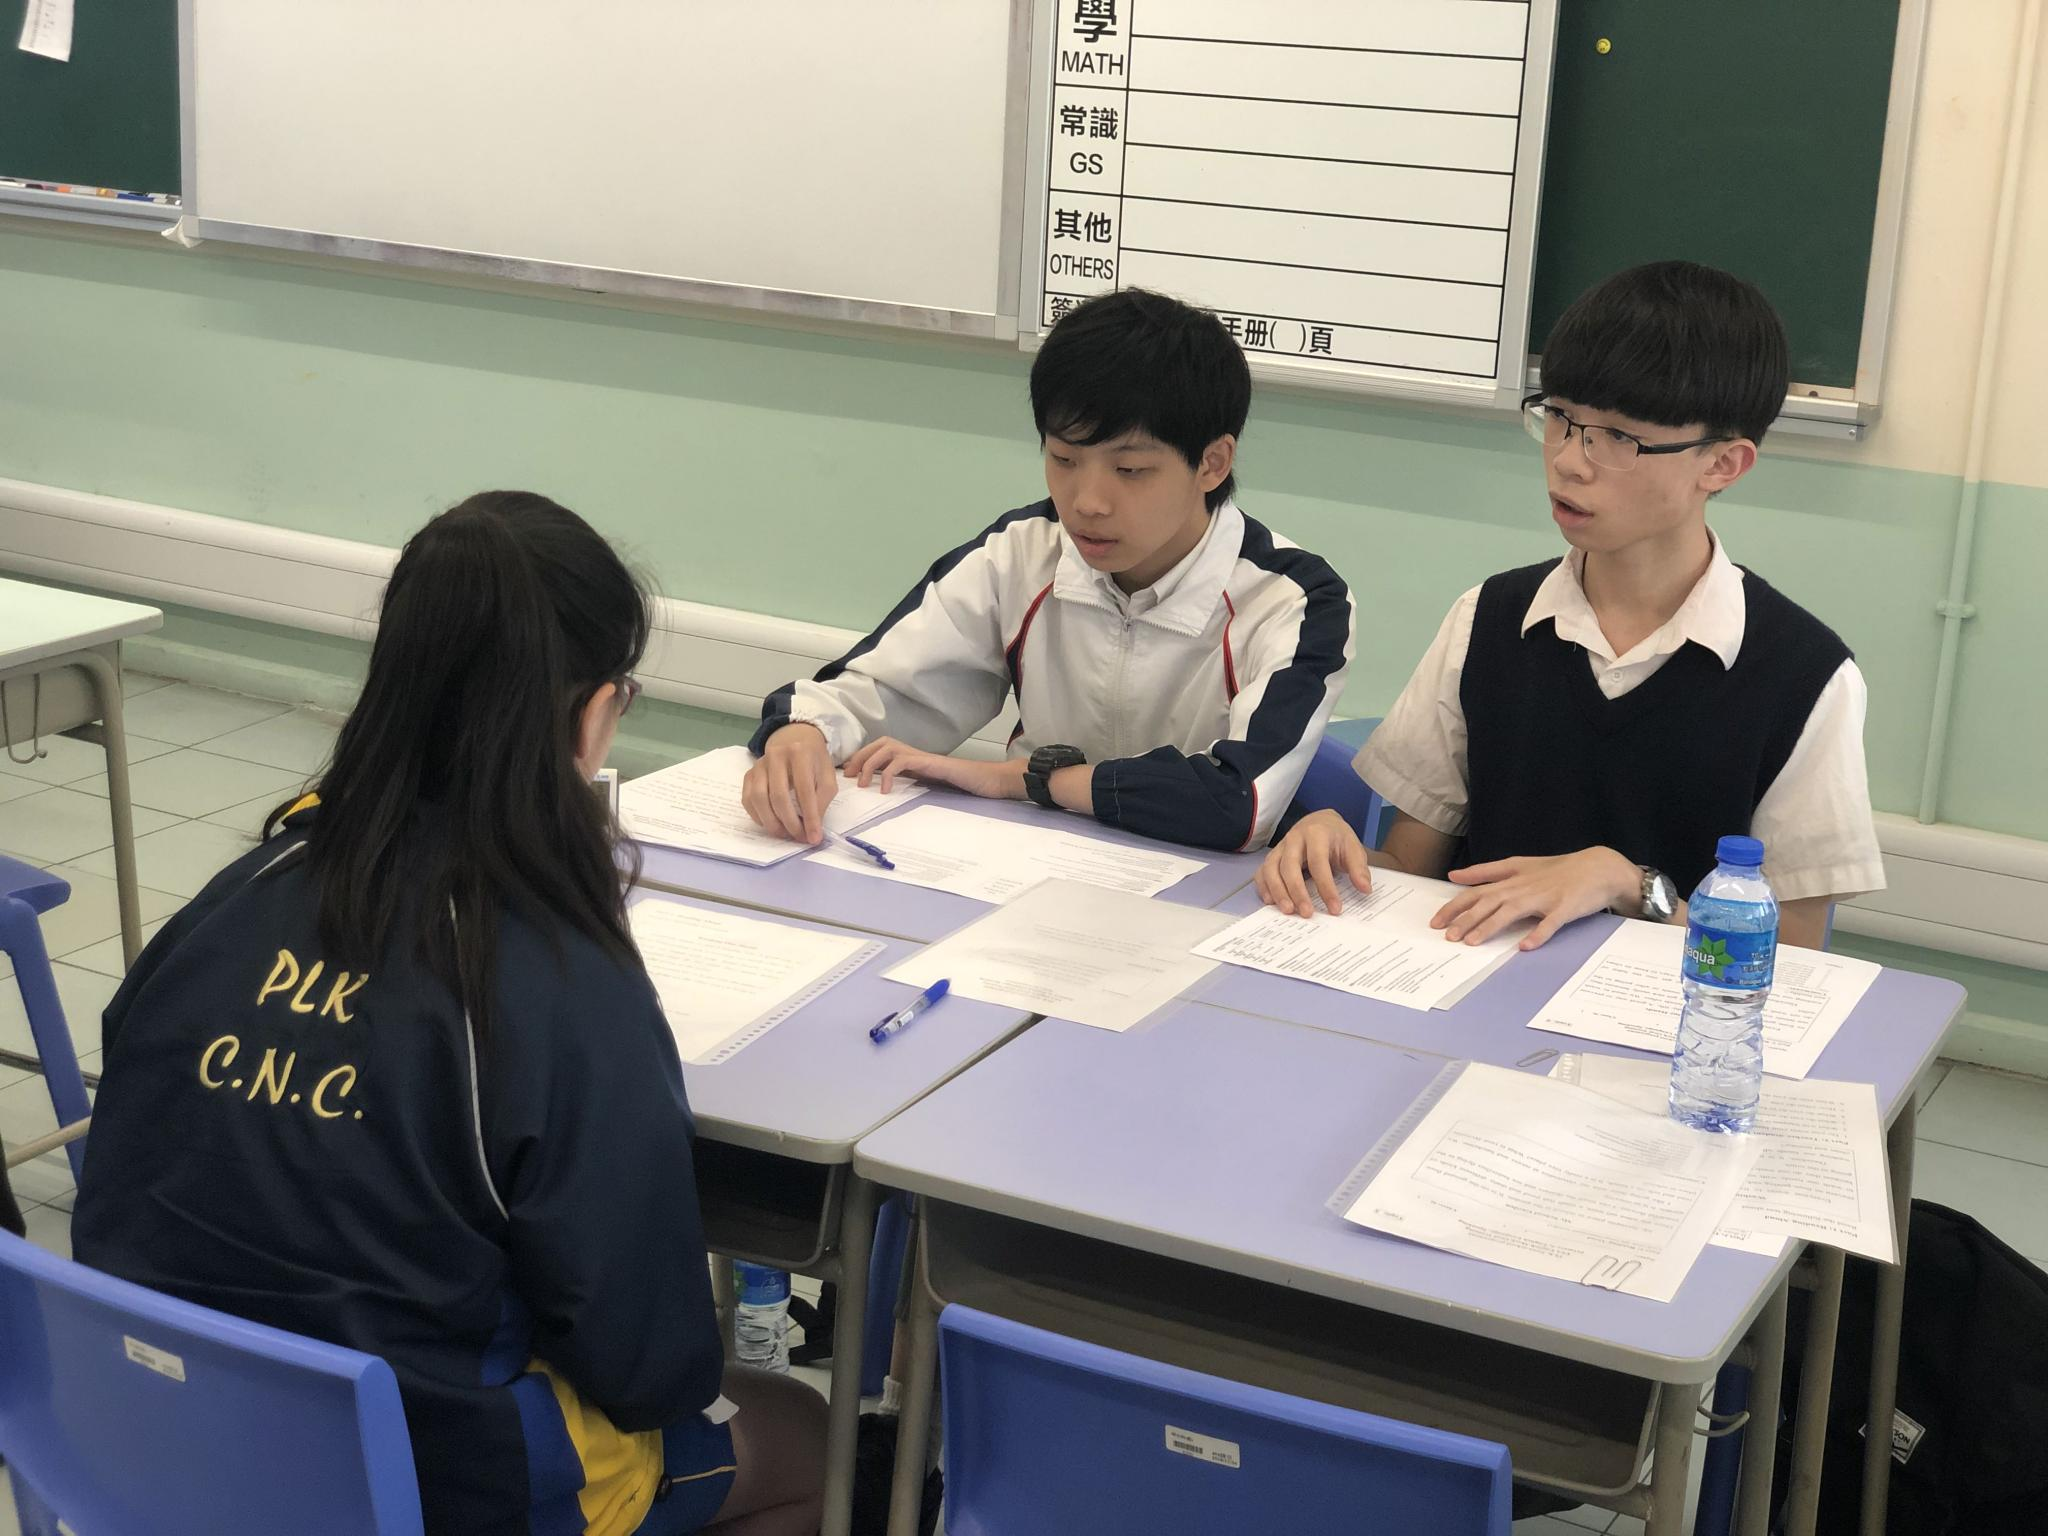 Our student helpers are having Mock Oral Assessment with some primary students.